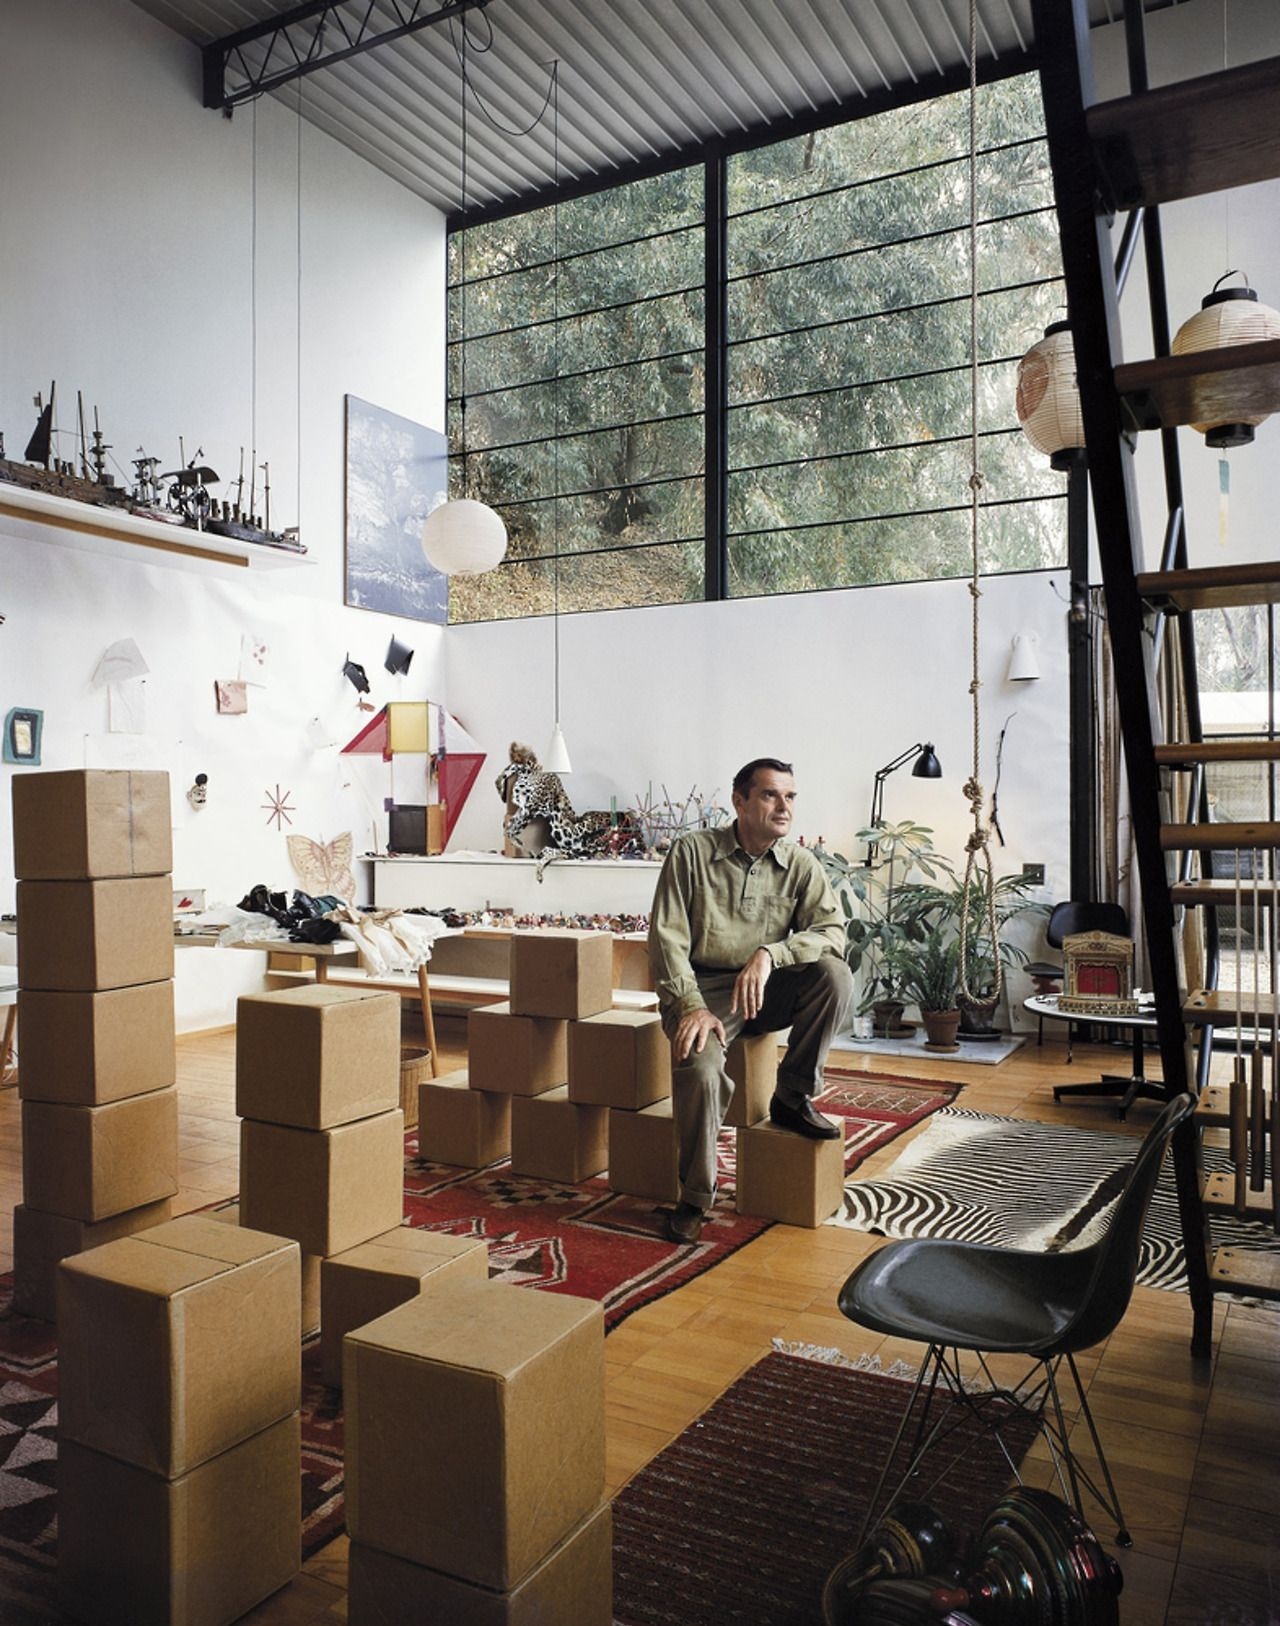 Ray And Charles Eames Charles Eames And Eames House Architecture In 2019